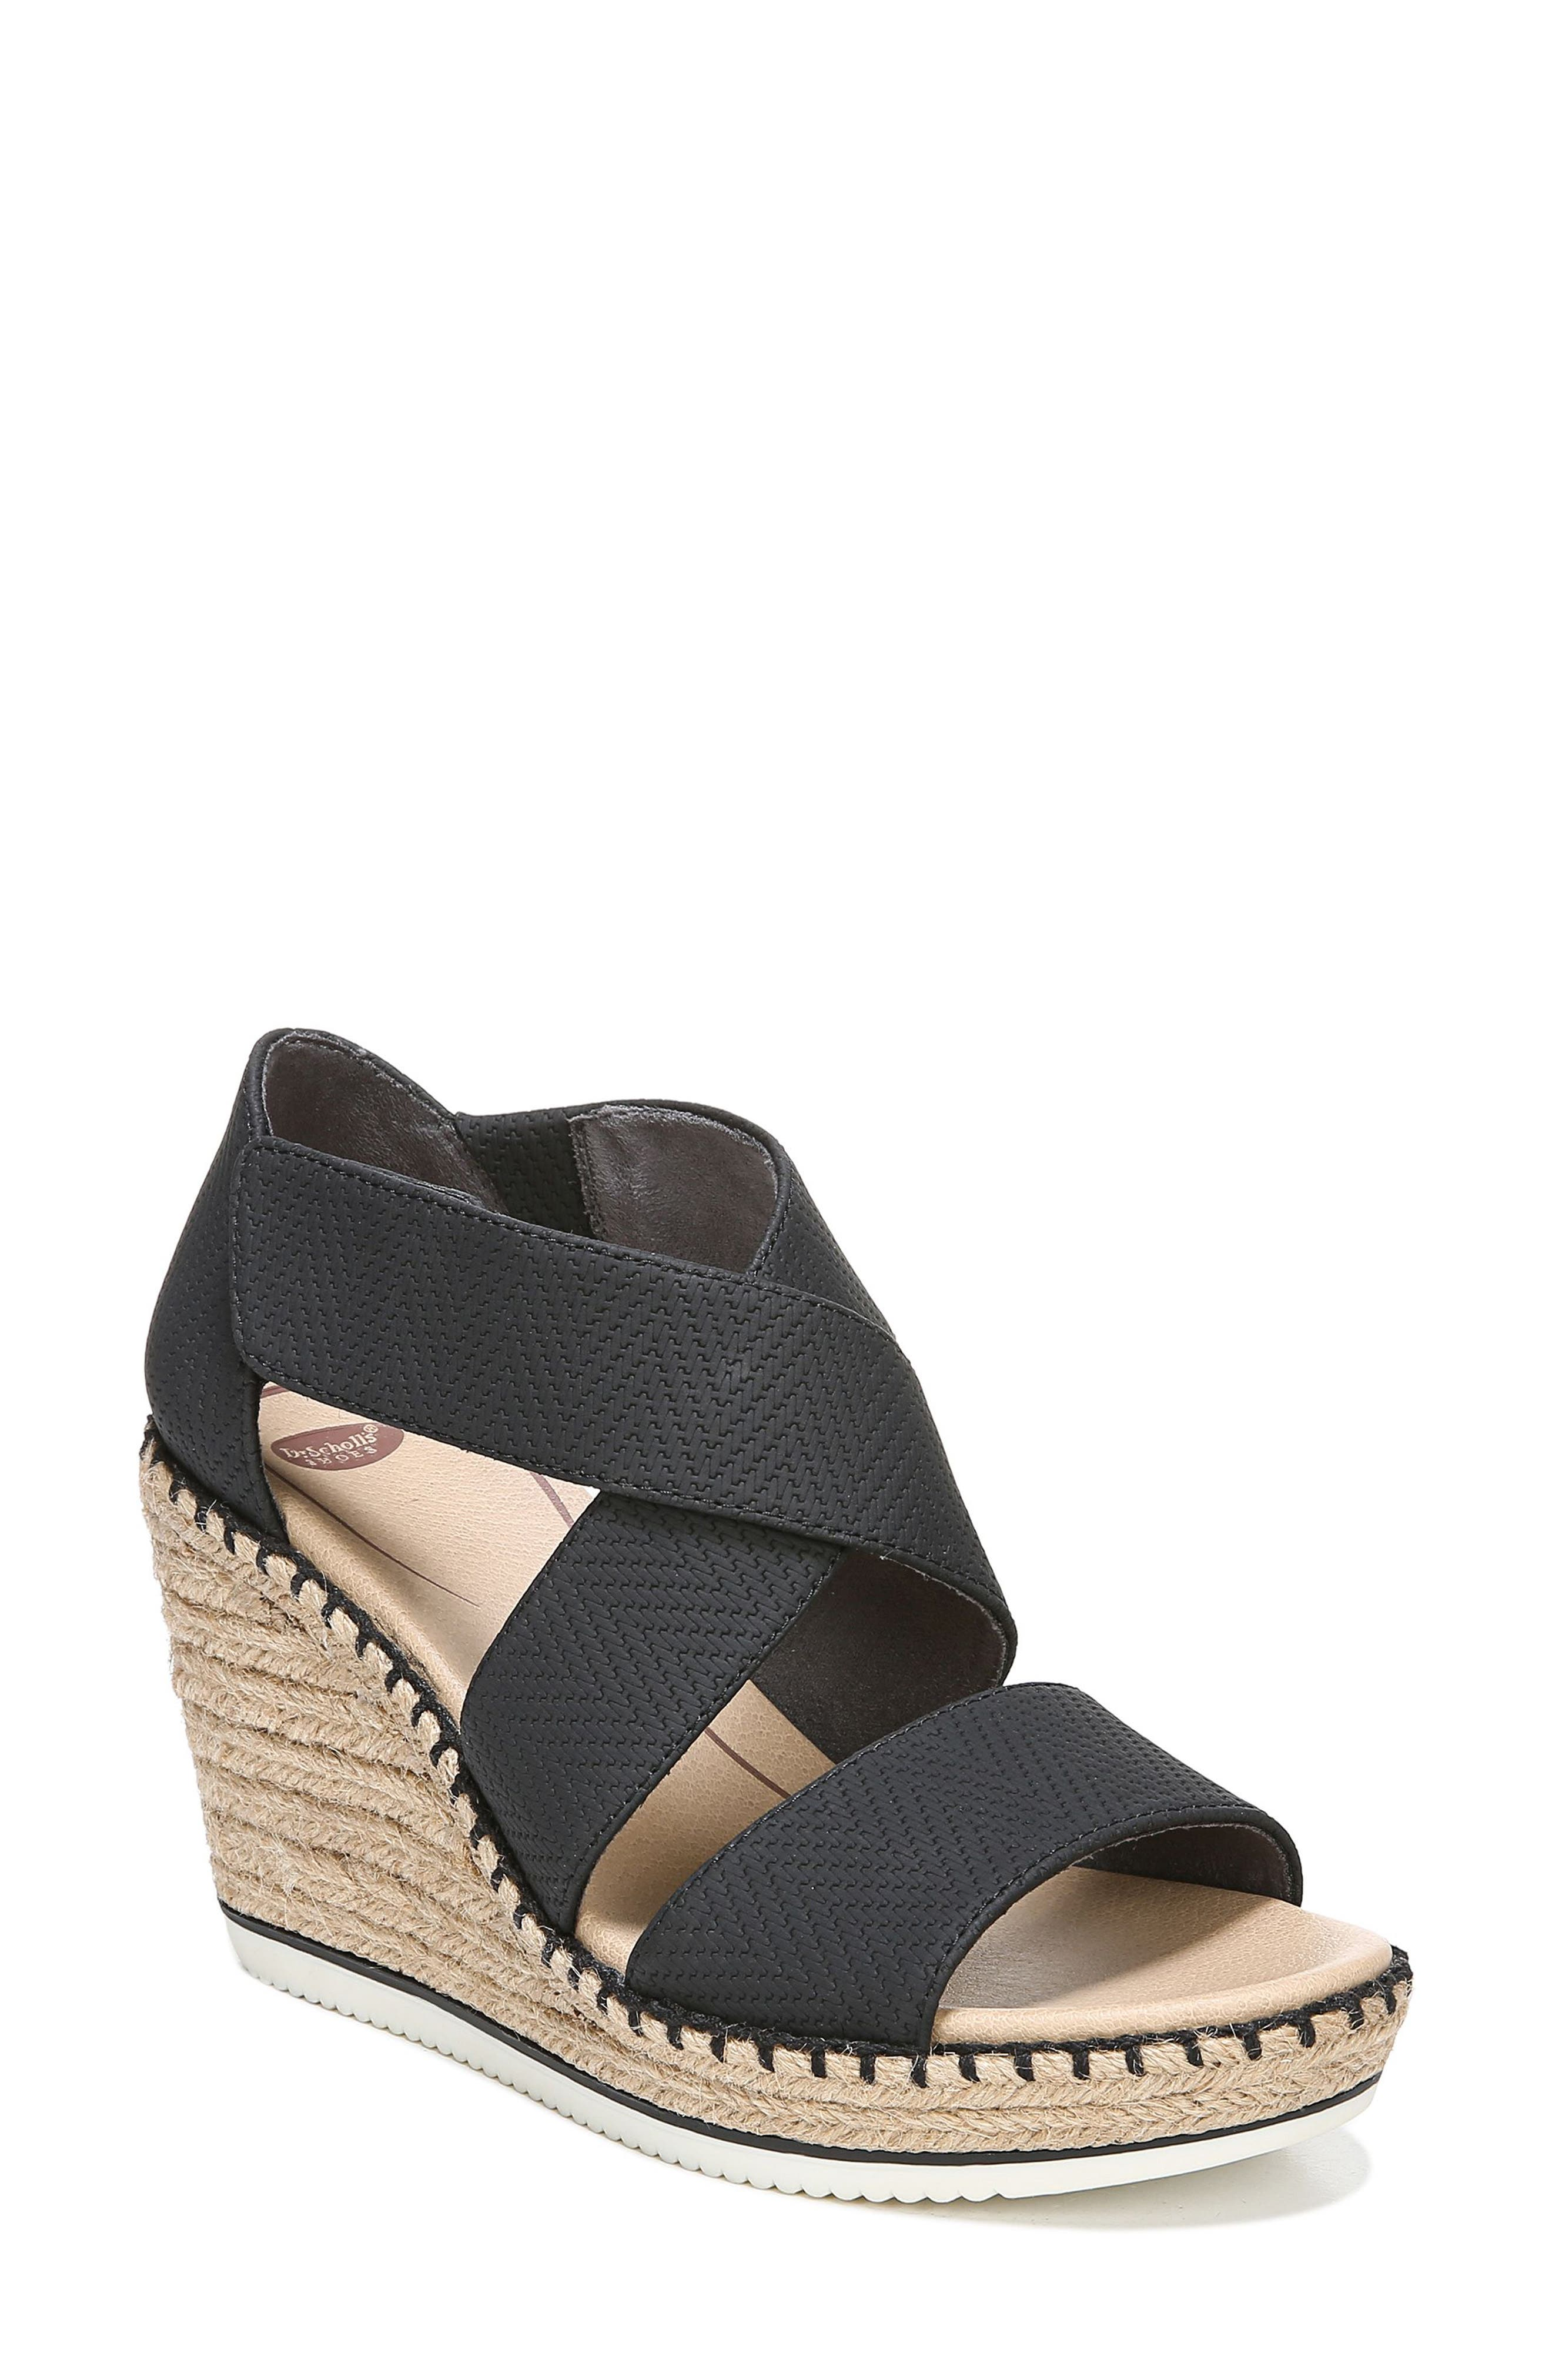 Vacay Wedge Sandal, Main, color, BLACK FAUX LEATHER